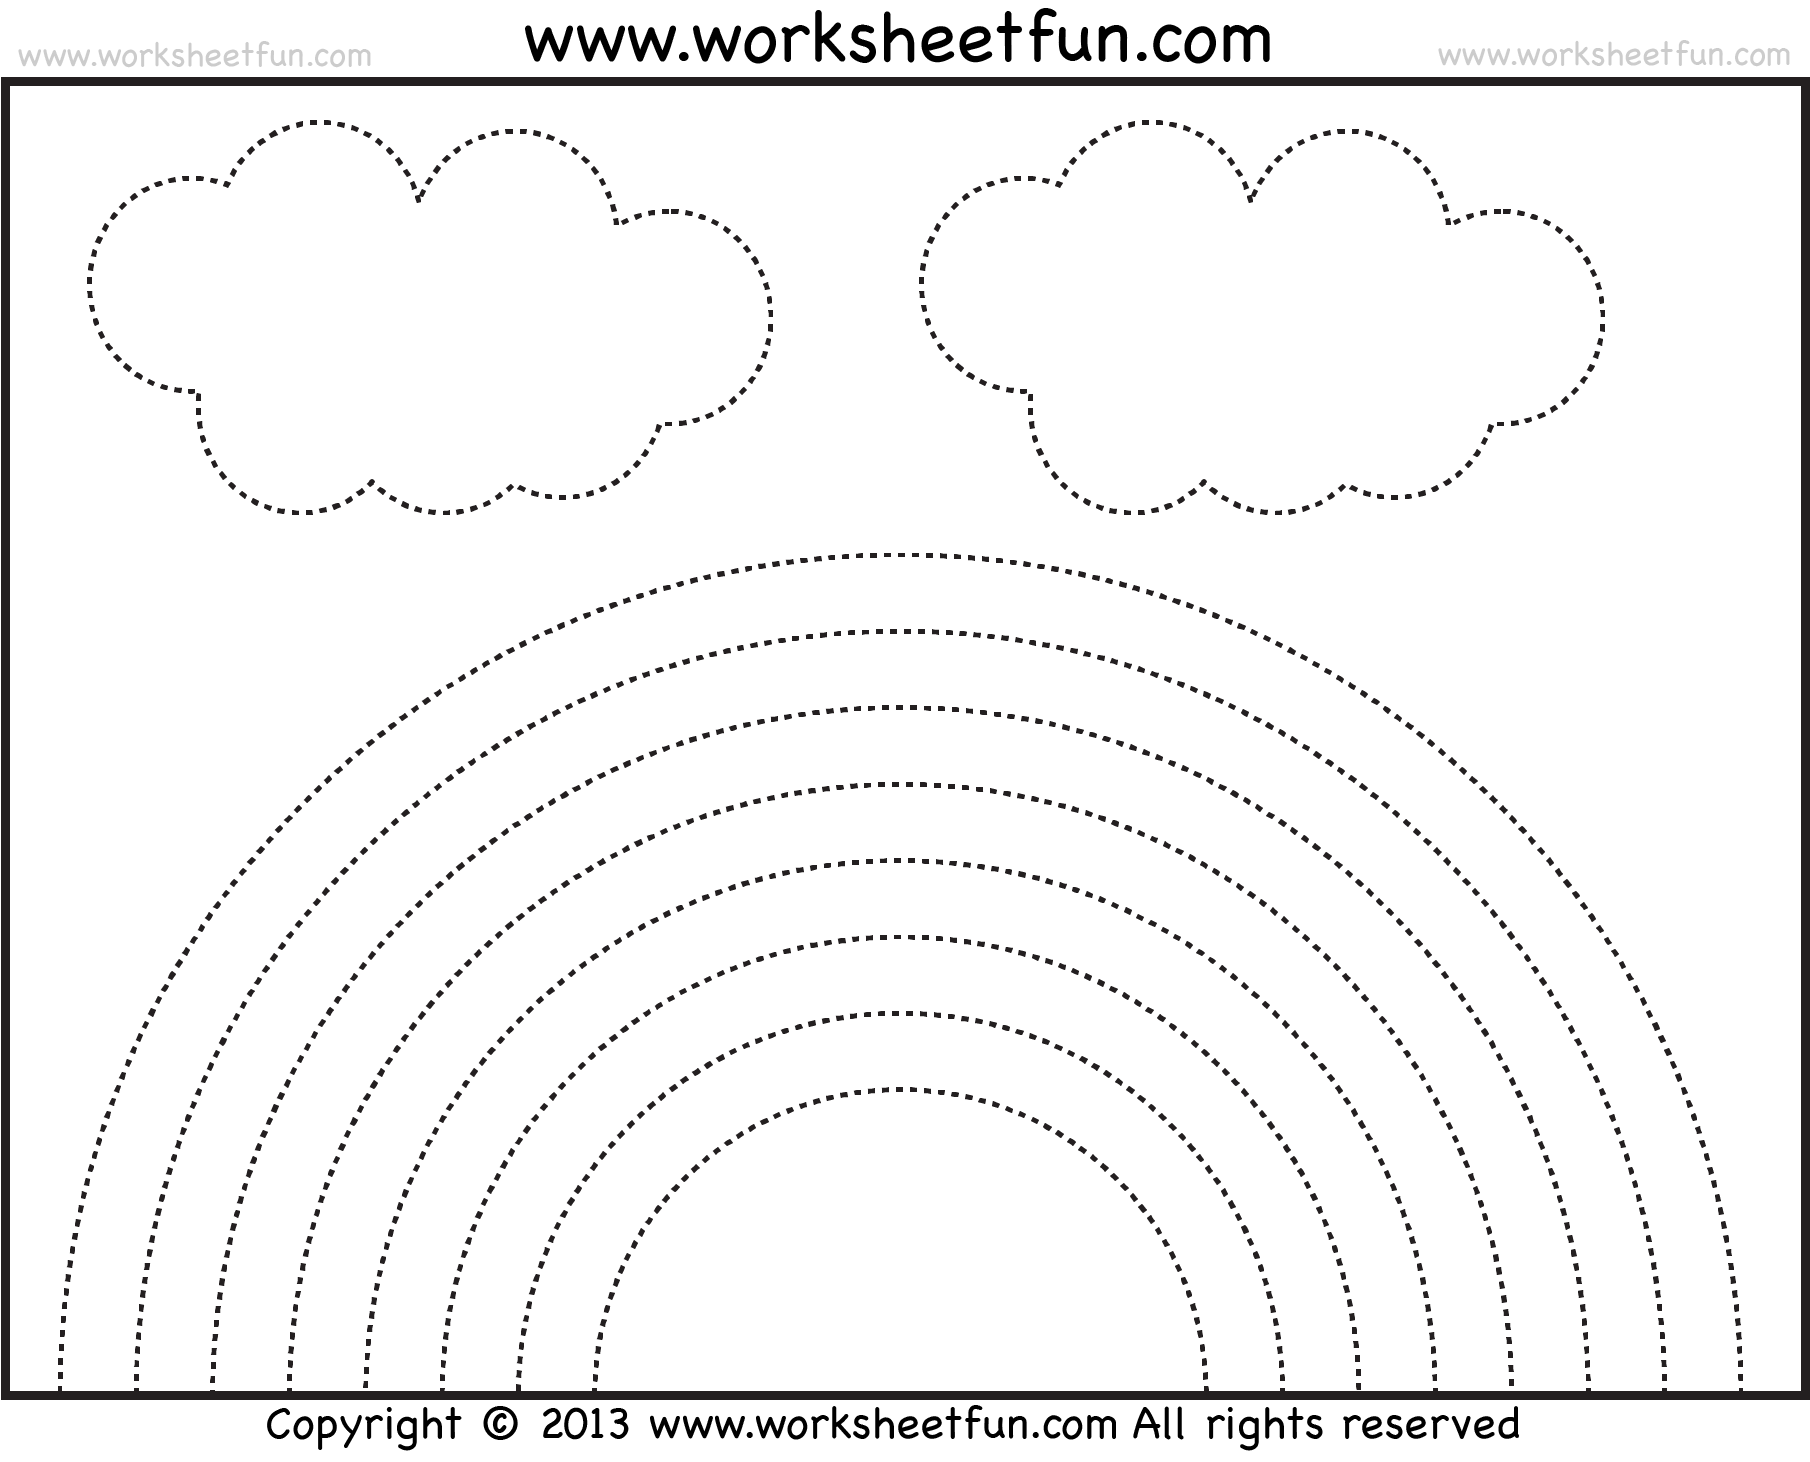 Rainbow Tracing And Coloring 4 Preschool Worksheets Free Printable Worksheets Worksheetfun